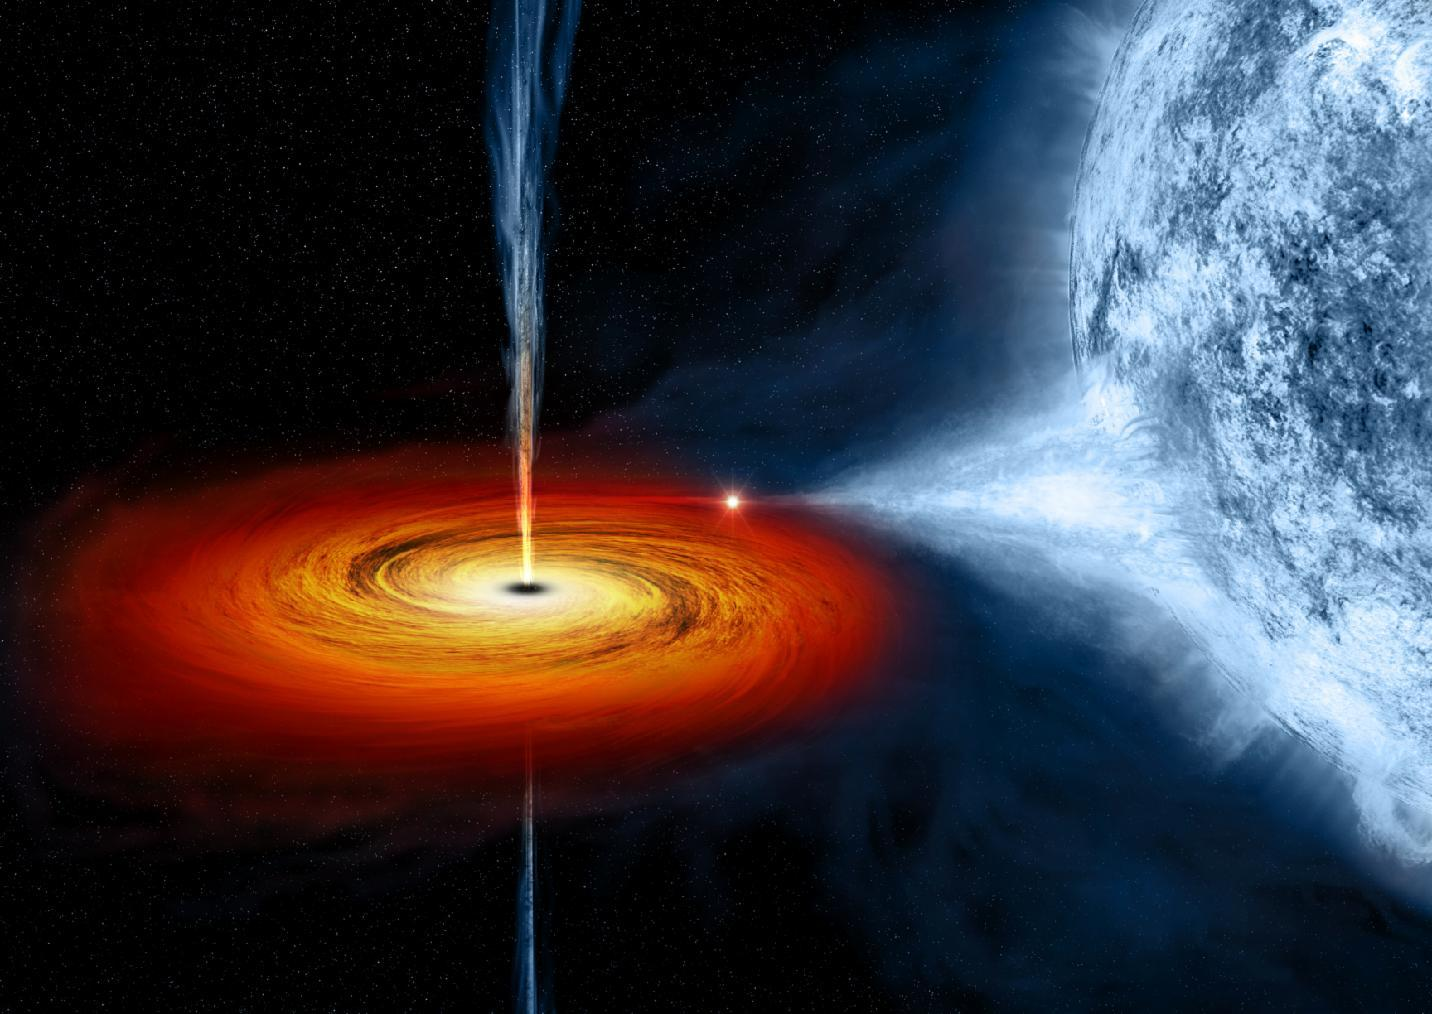 What is a good way to make a model black hole?